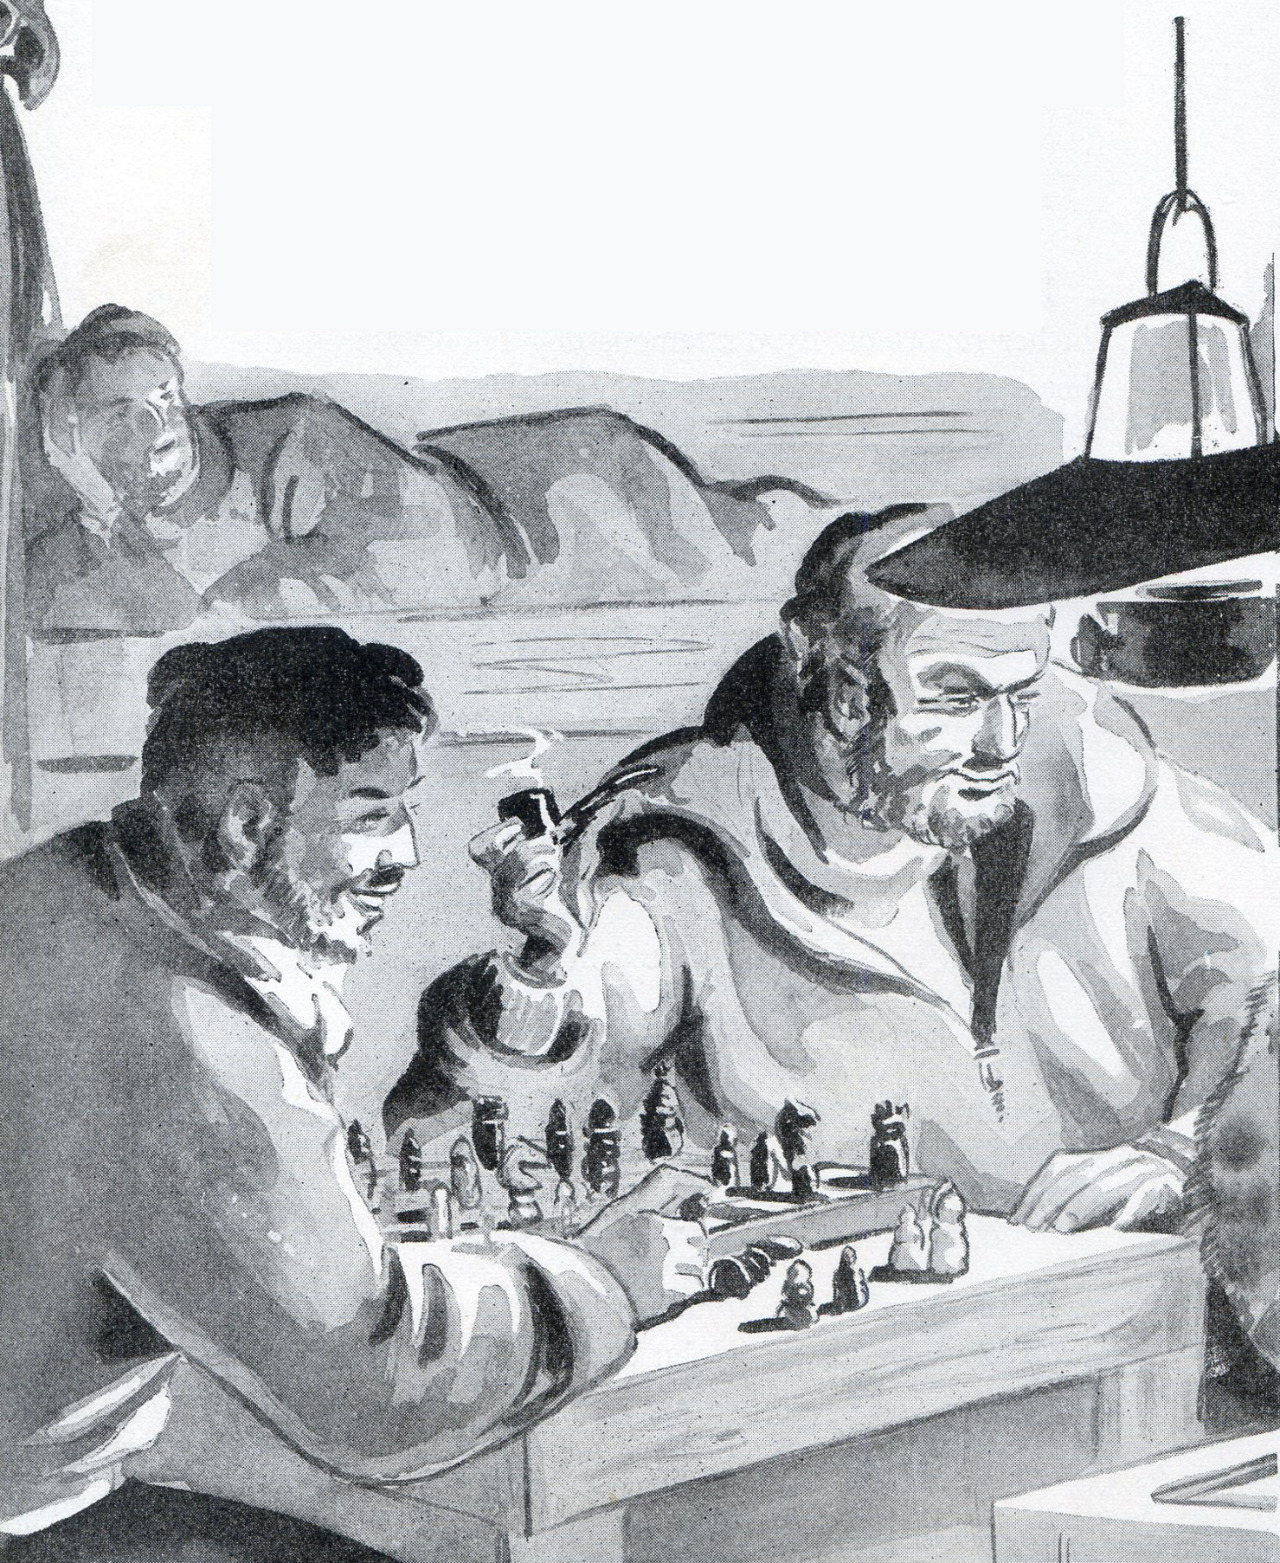 """To make chess more interesting they played while watching porn. """"Aah, the Pizza Boy Gambit, I never saw it coming.""""English - Grade 6  1948  (Original title English - Grade 2  1944) #Illustration#vintage illustration#childrens illustration#text book#chess#1940s#1940s#funny#humor"""